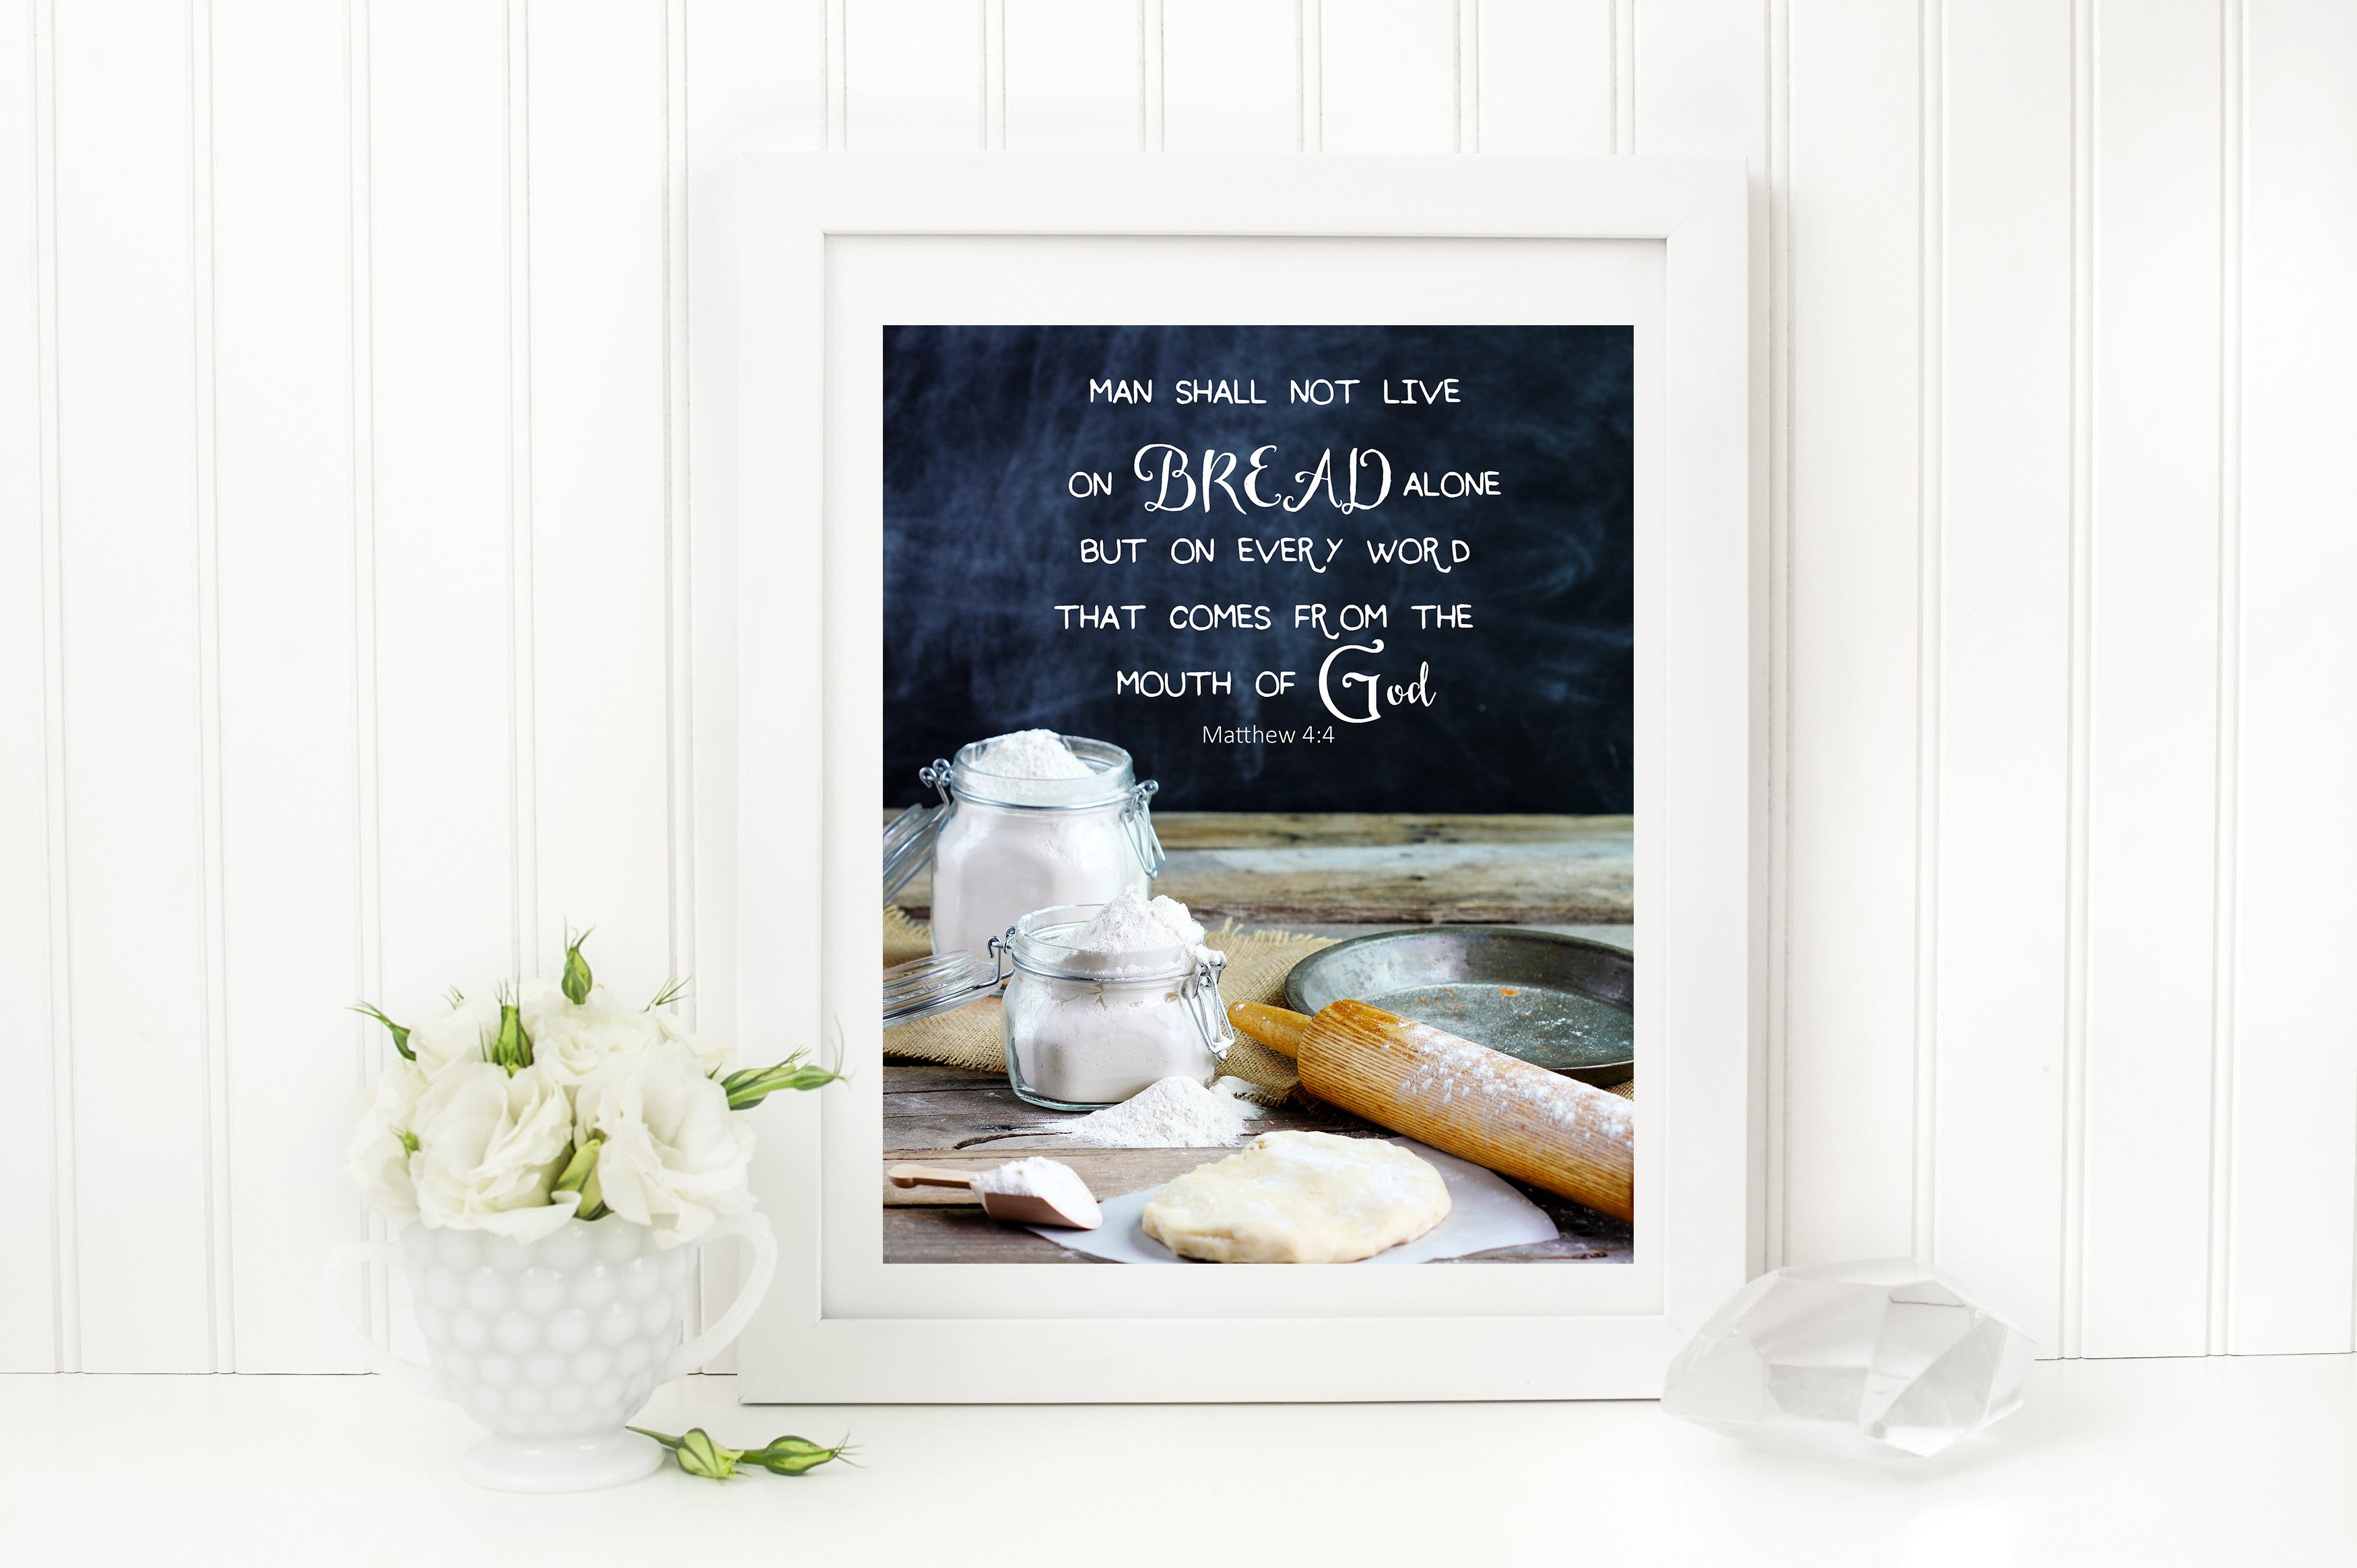 Give us this day our Daily Bread Bible Verse Matthew 6:11 Professional still life photography art of the word of God. Available in prints and canvas